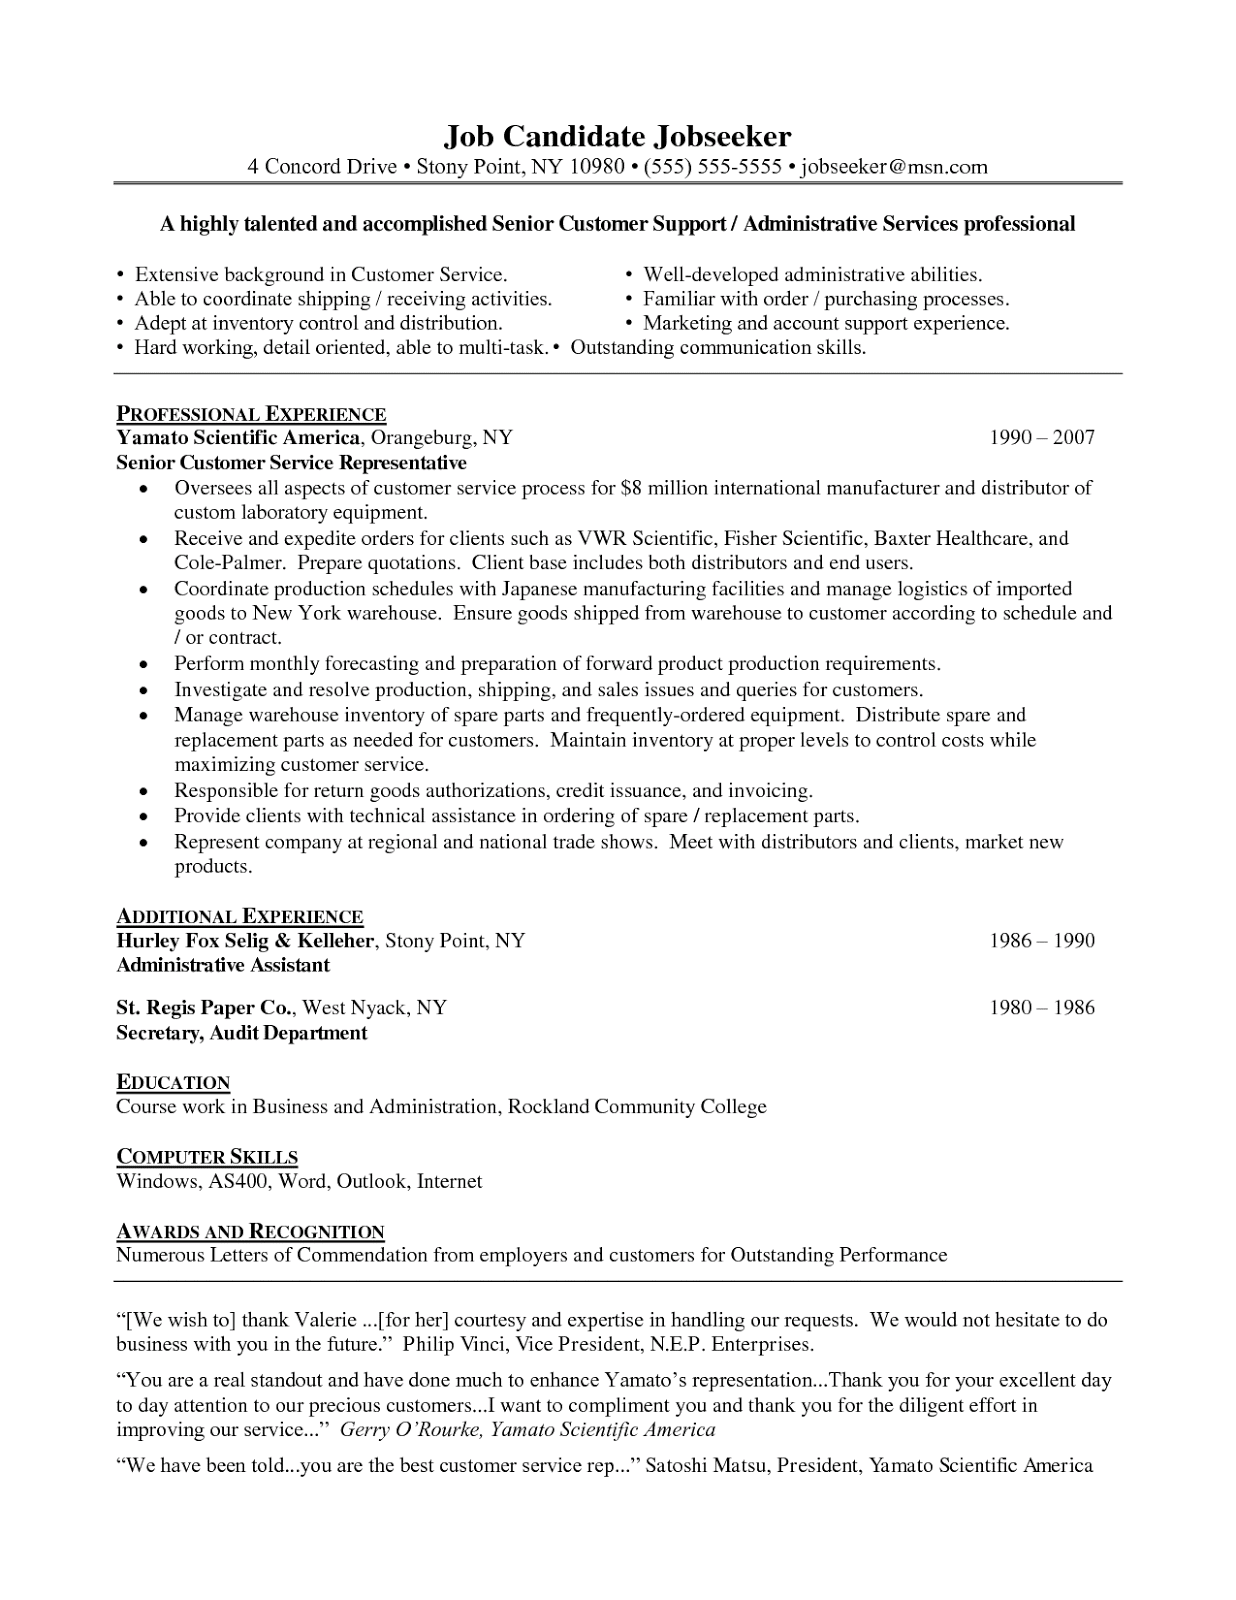 customer support resume summary resume samples customer service good resume summary examples resume samples customer service good resume summary examples